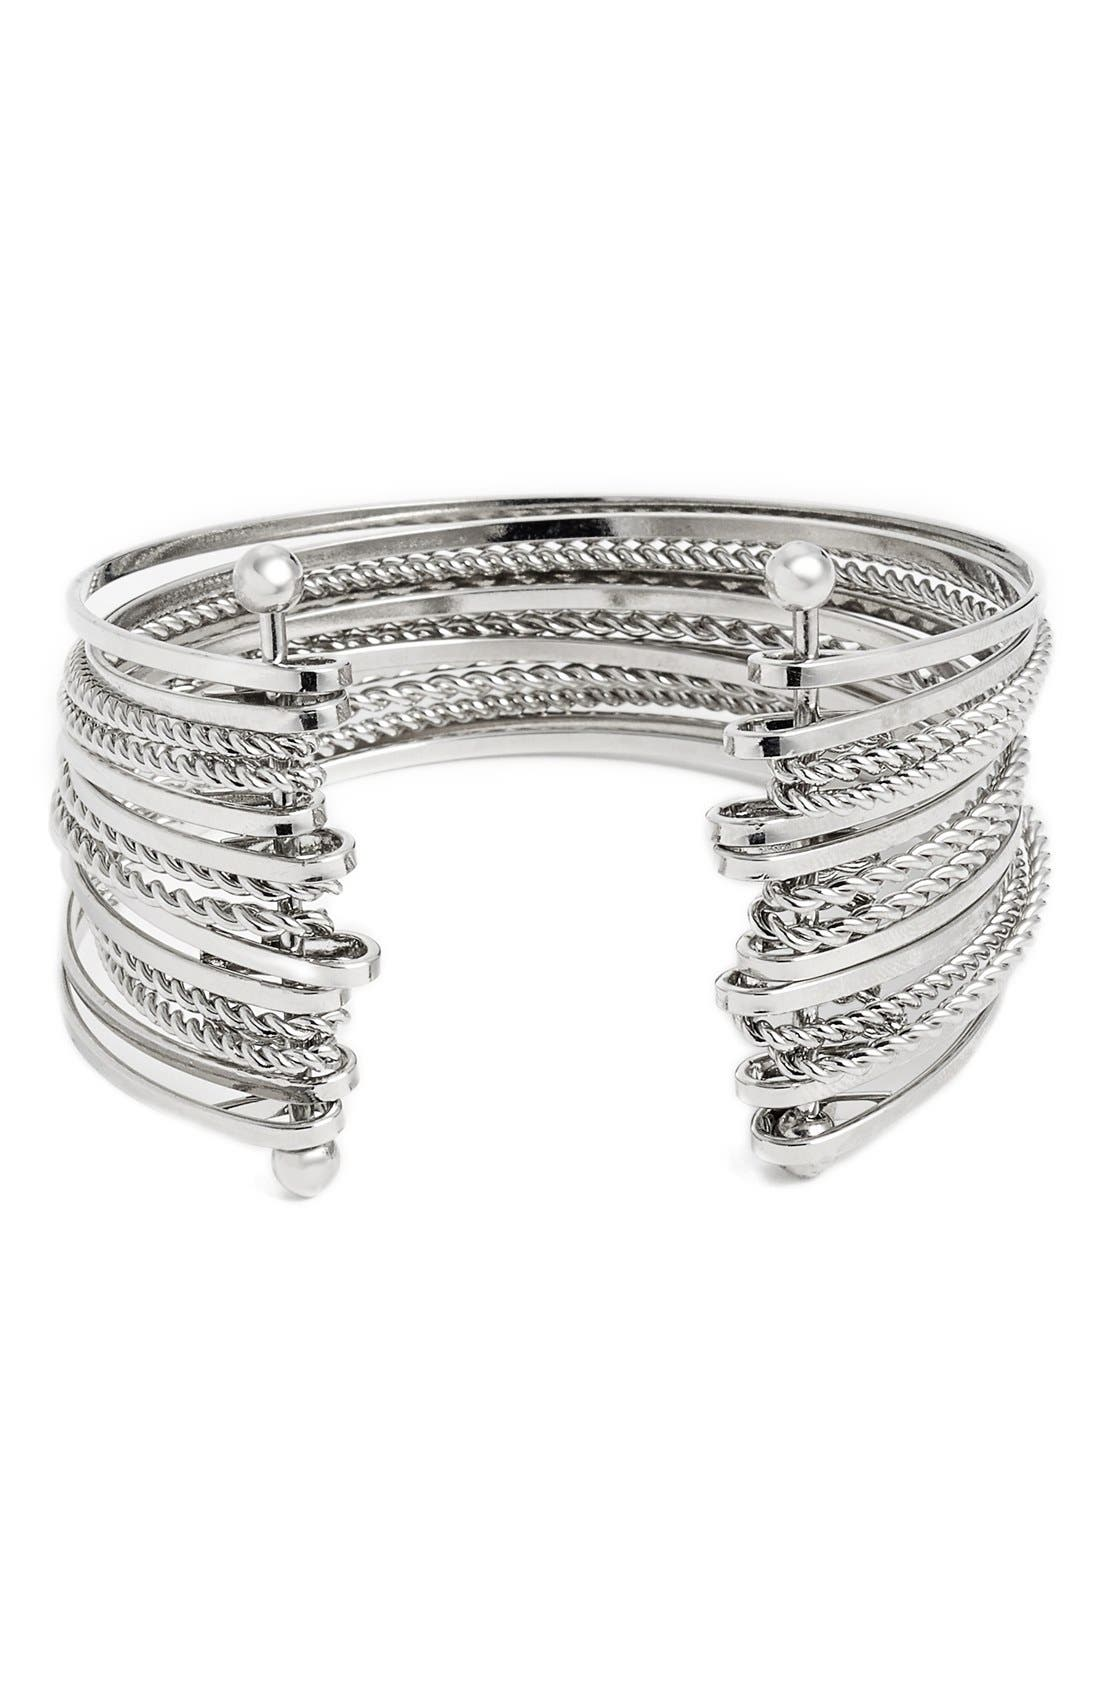 Main Image - BP. Twisted Chain Multi Row Cuff Bracelet